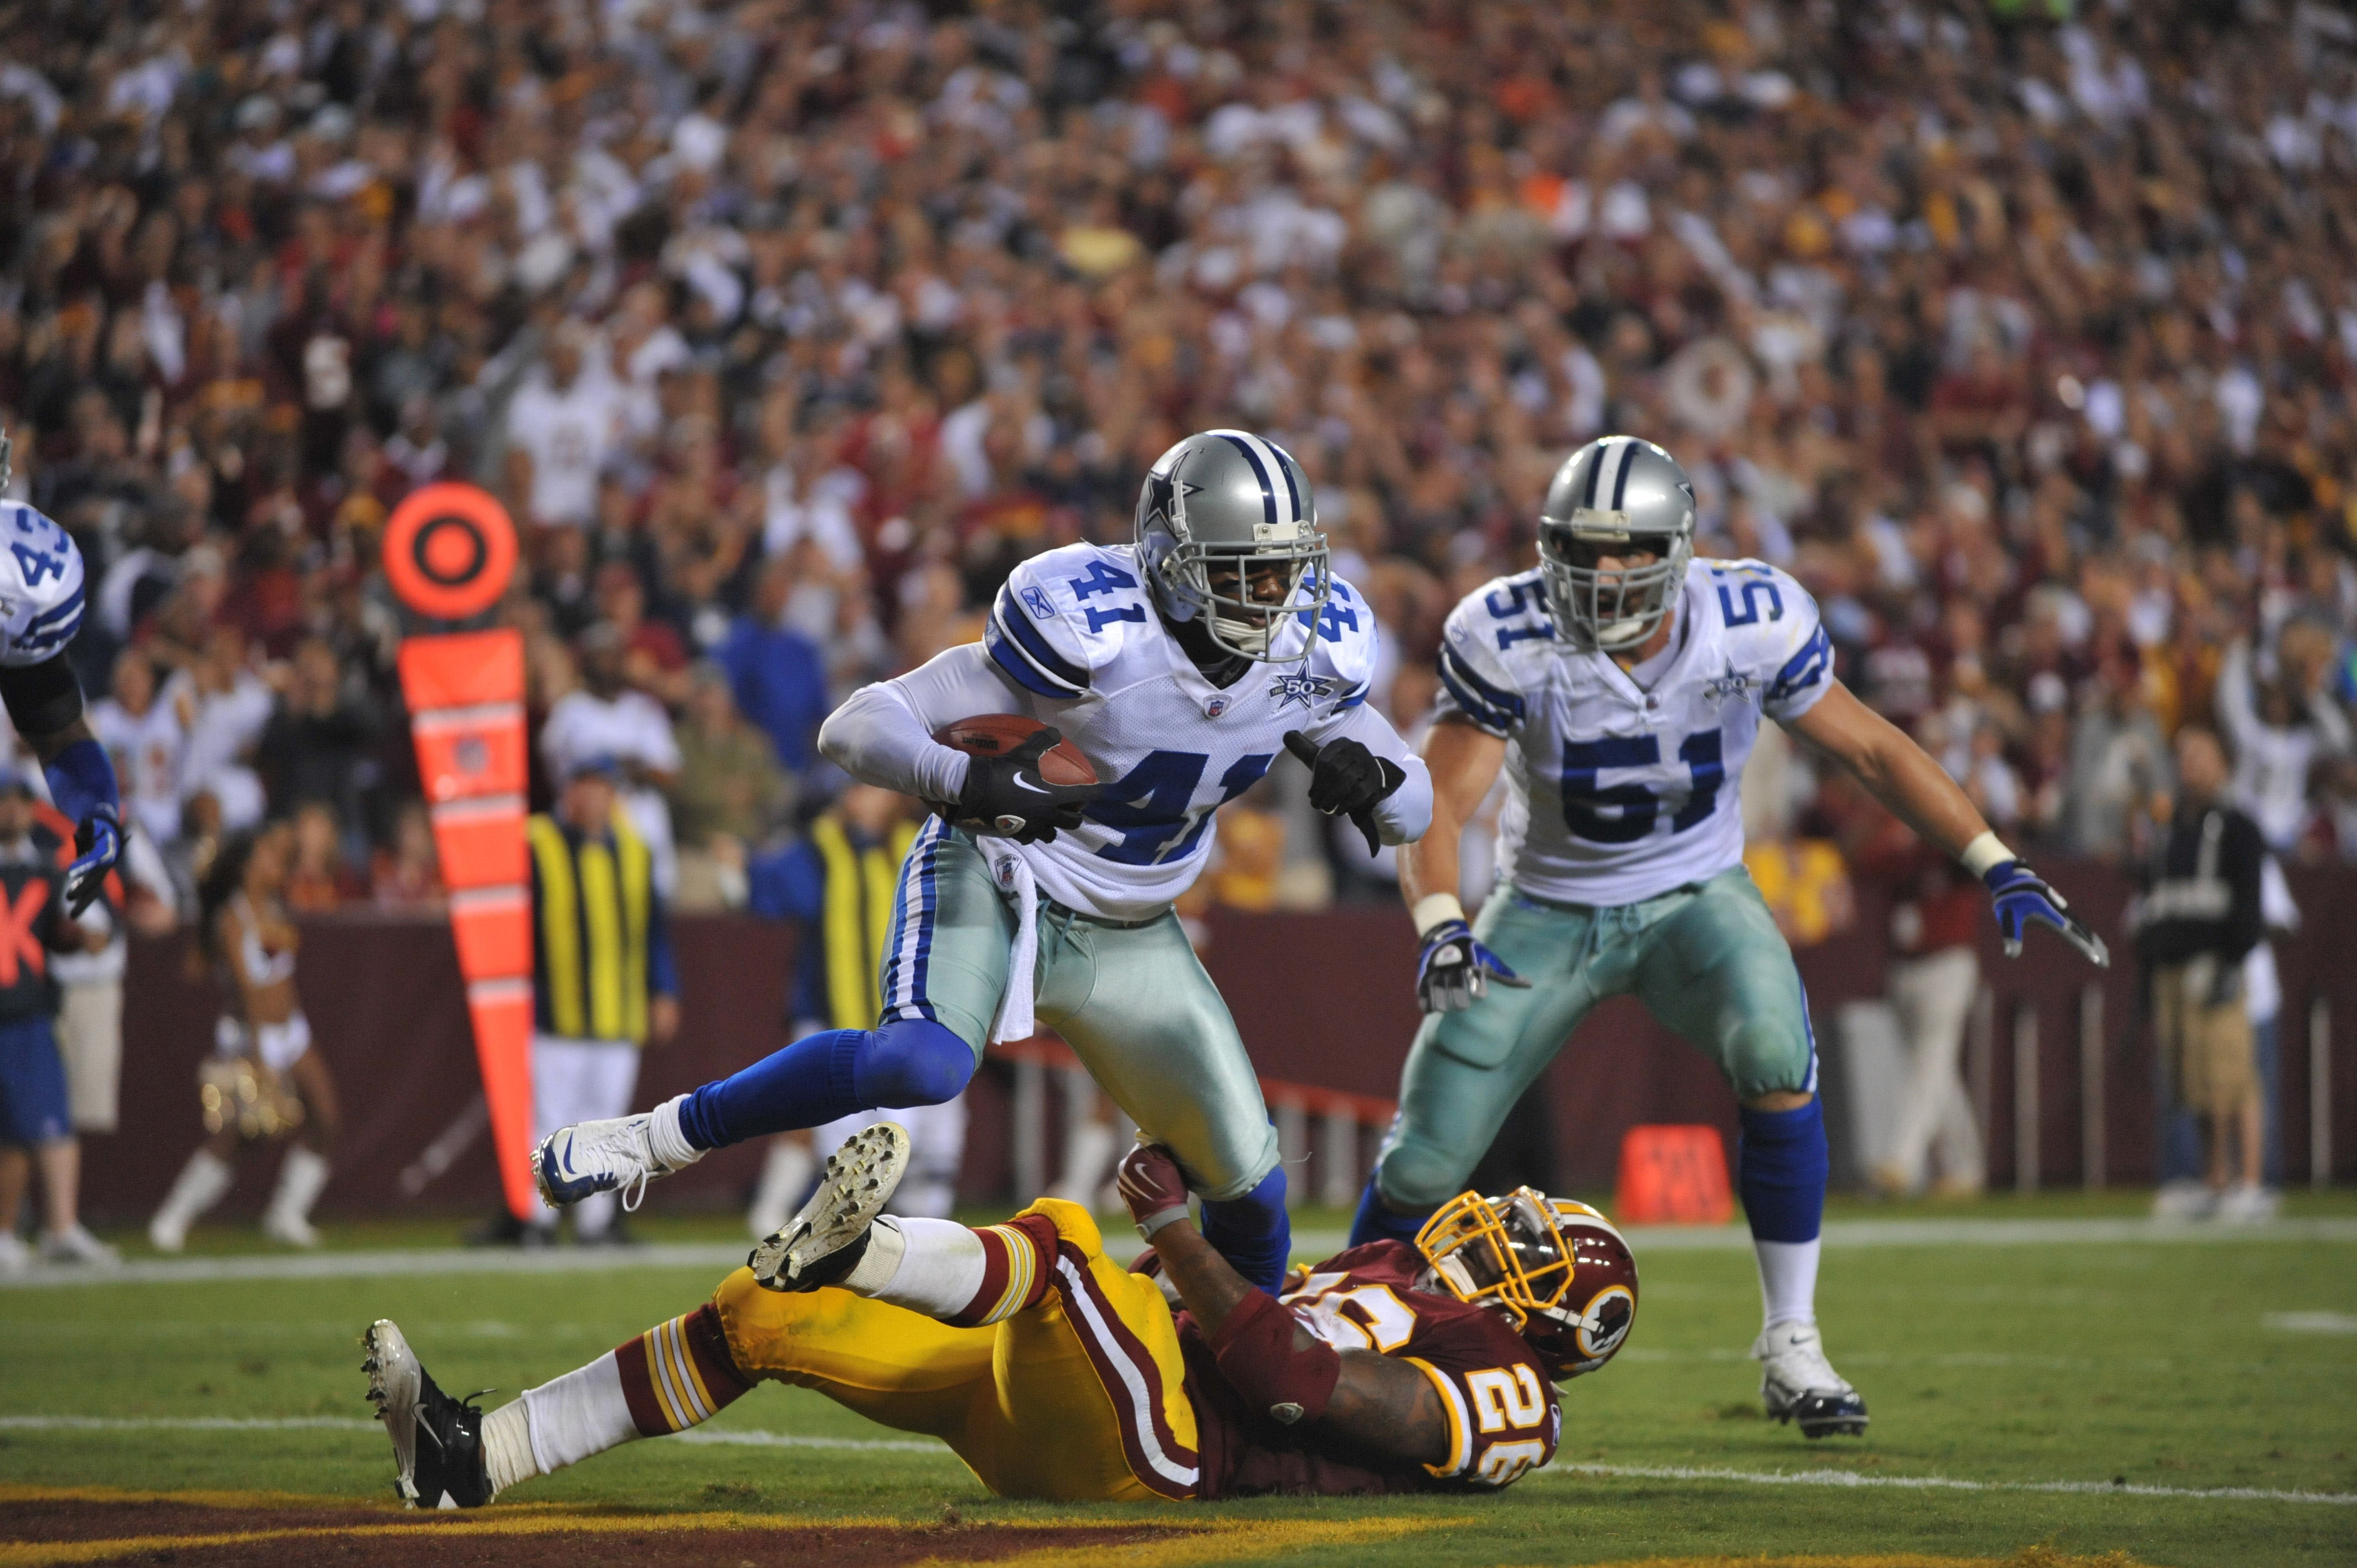 LANDOVER - SEPTEMBER 12:  Terence Newman #41 of the Dallas Cowboys makes an apparent interception on a play called back during the NFL season opener against the Washington Redskins at FedExField on September 12, 2010 in Landover, Maryland. The Redskins de